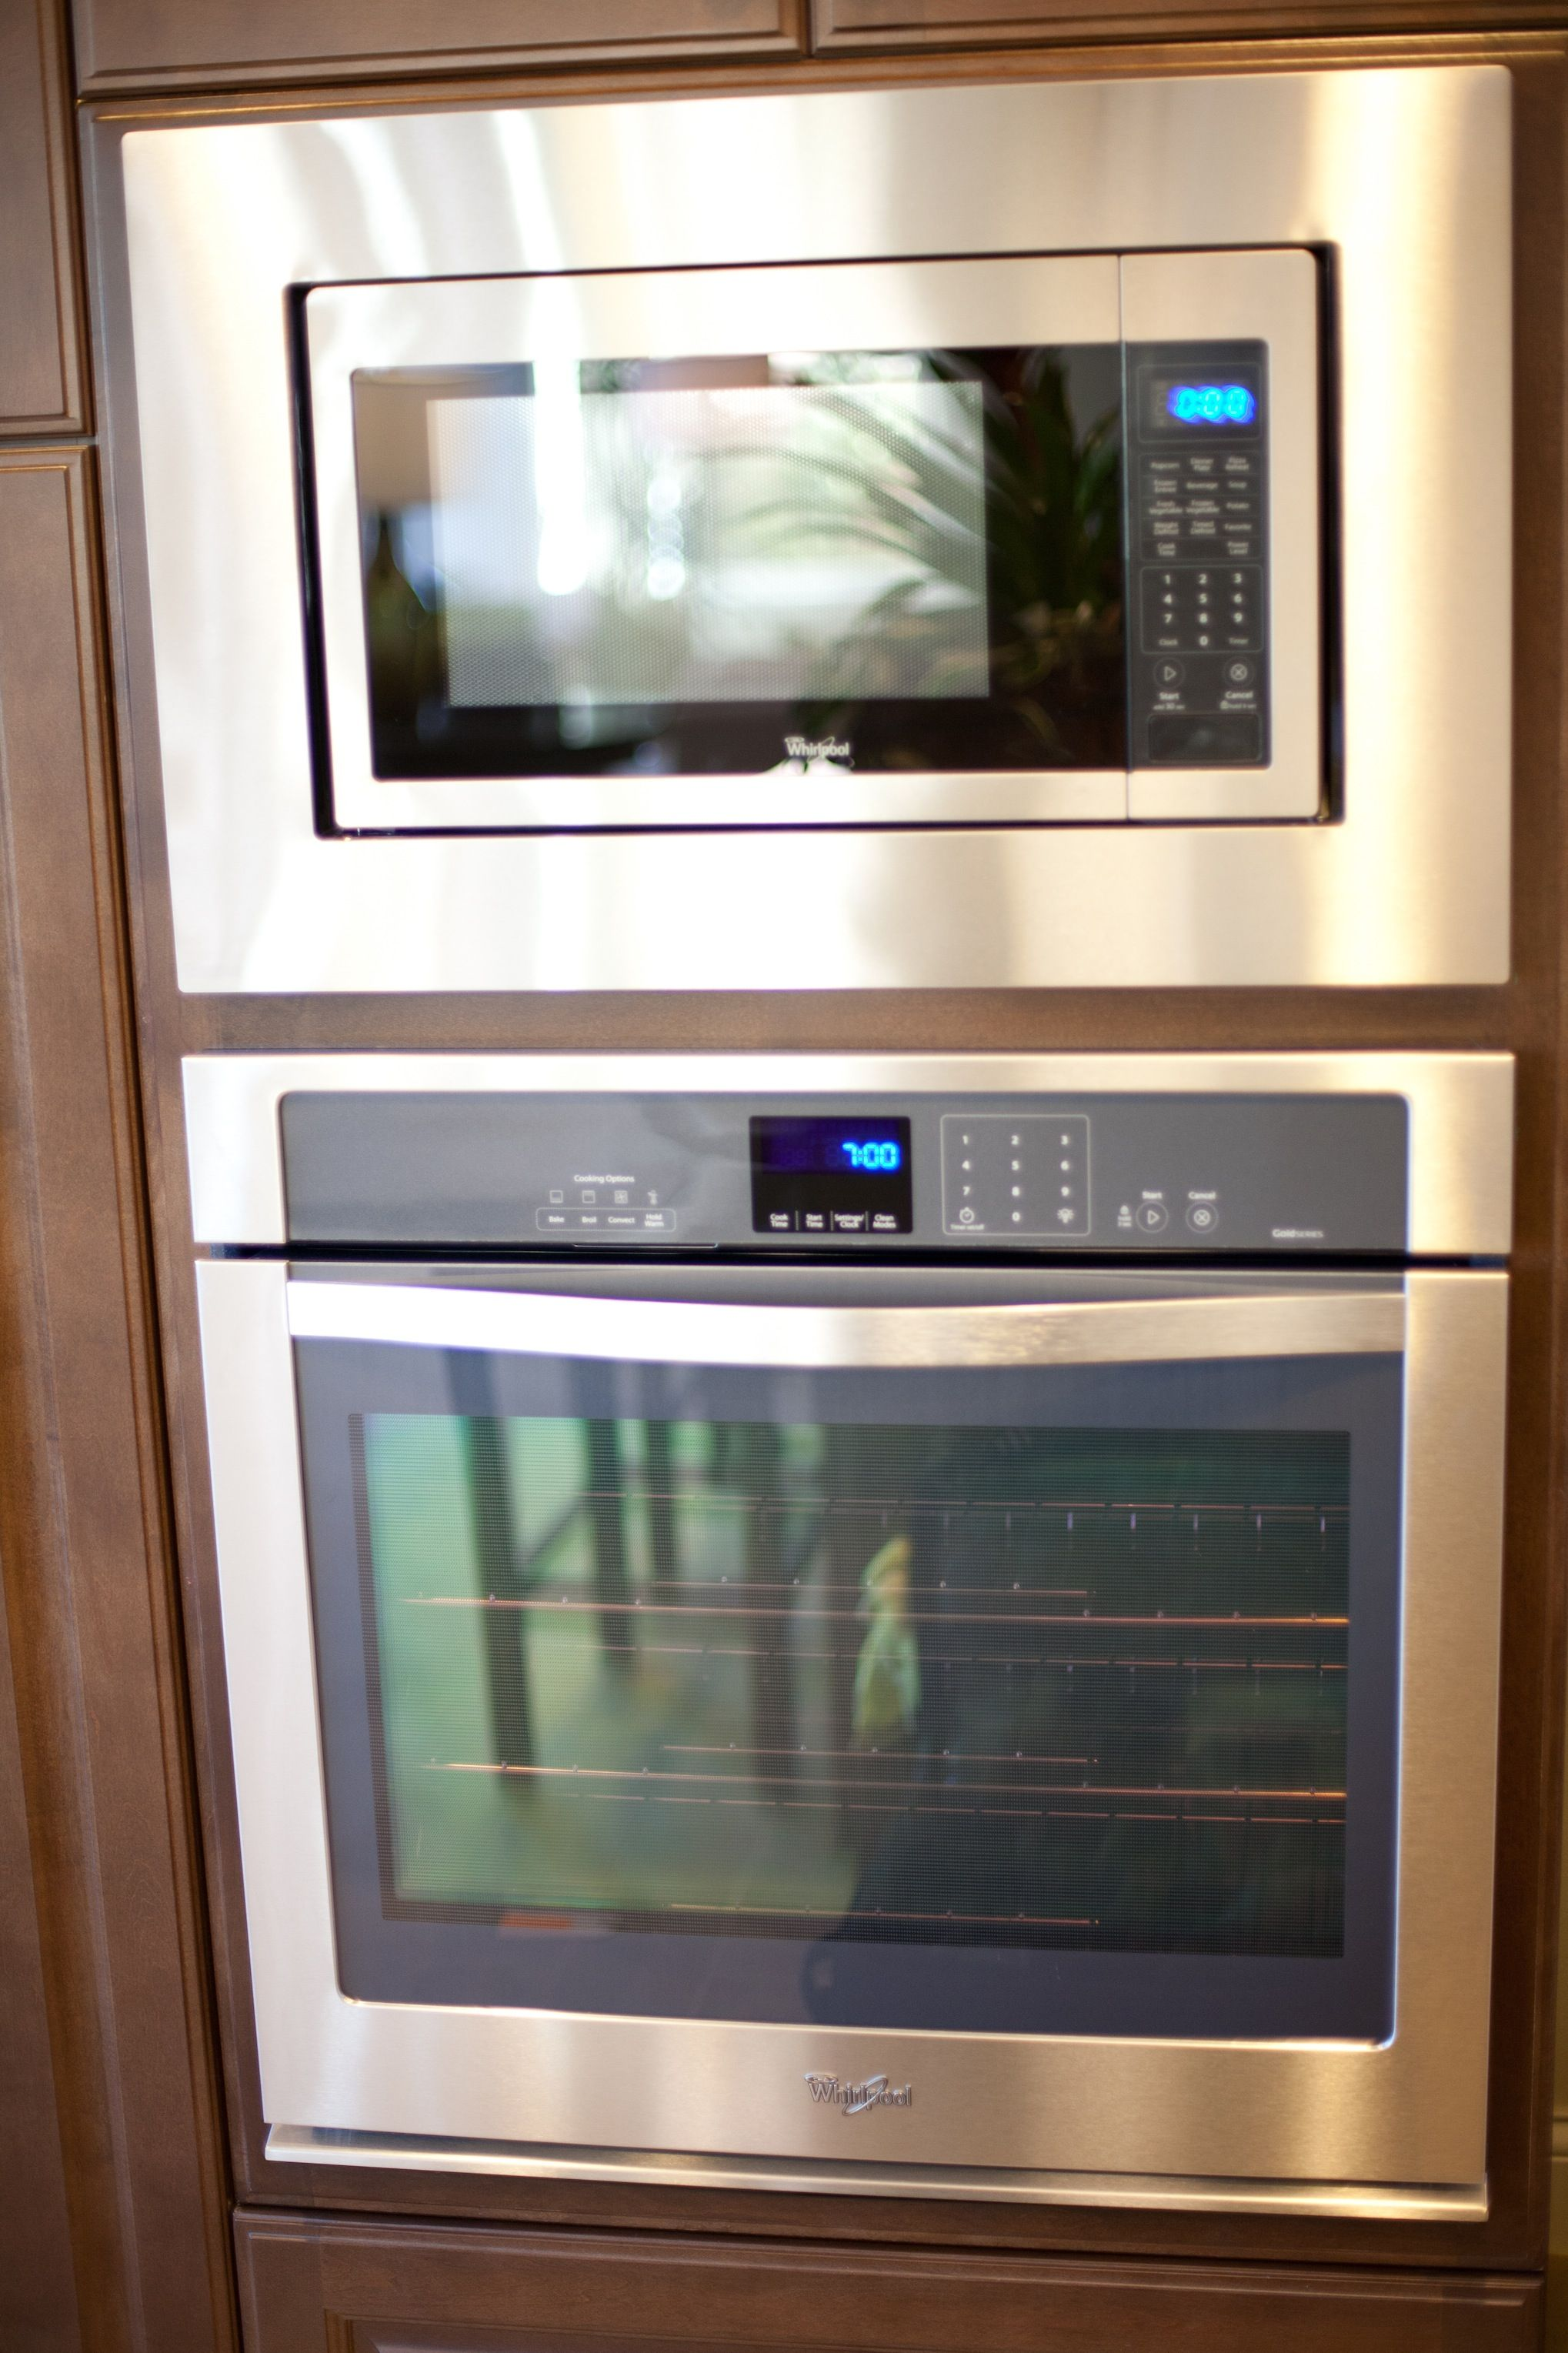 Whirlpool Gold Series Stainless Steel Finish Microwave